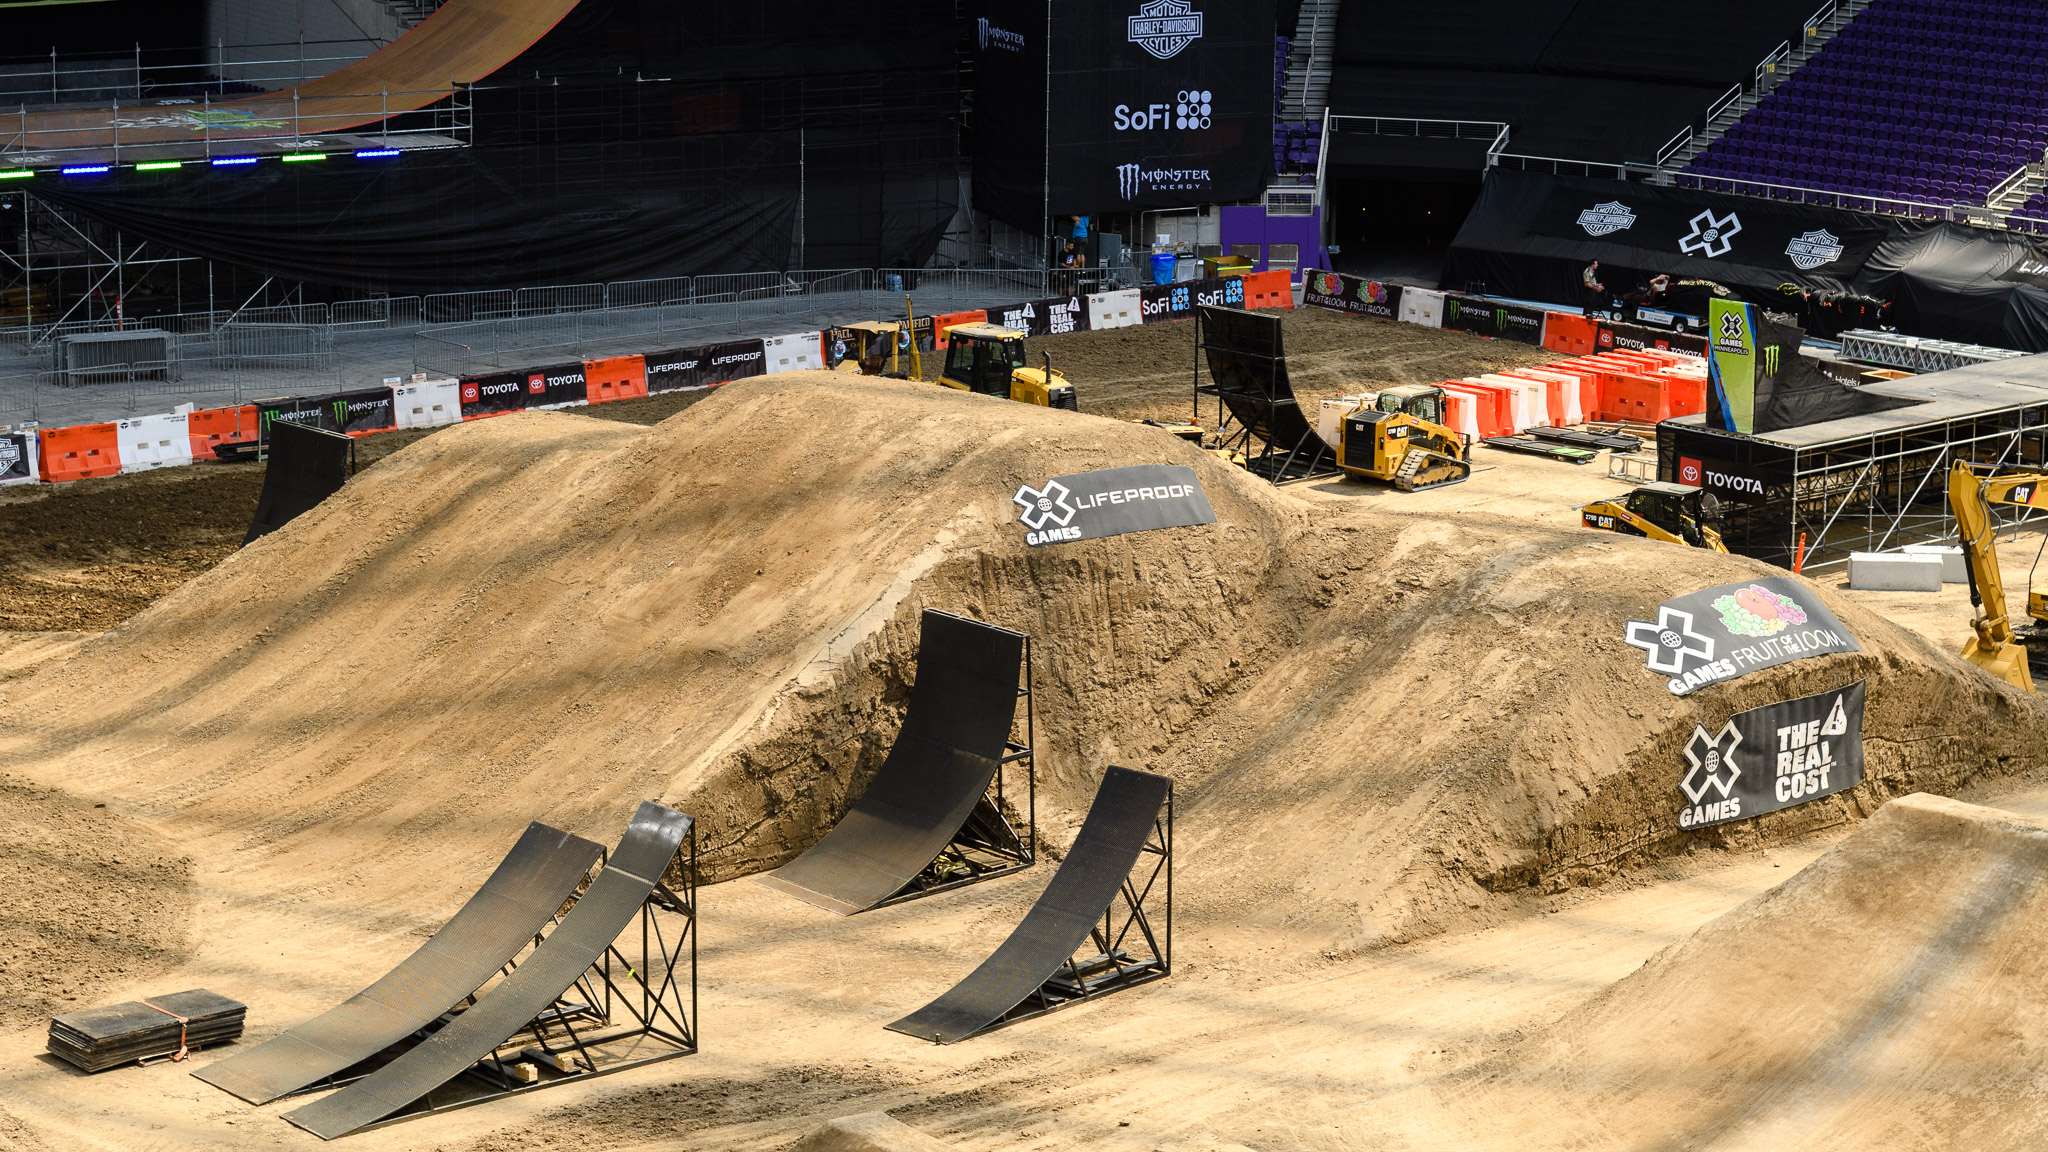 Here's an overall glimpse of the Moto X Freestyle build in progress. Once the action starts, the Moto X courses will continue to evolve to match the needs of each competition. Yes, X Games builds go overnight during X Games week.